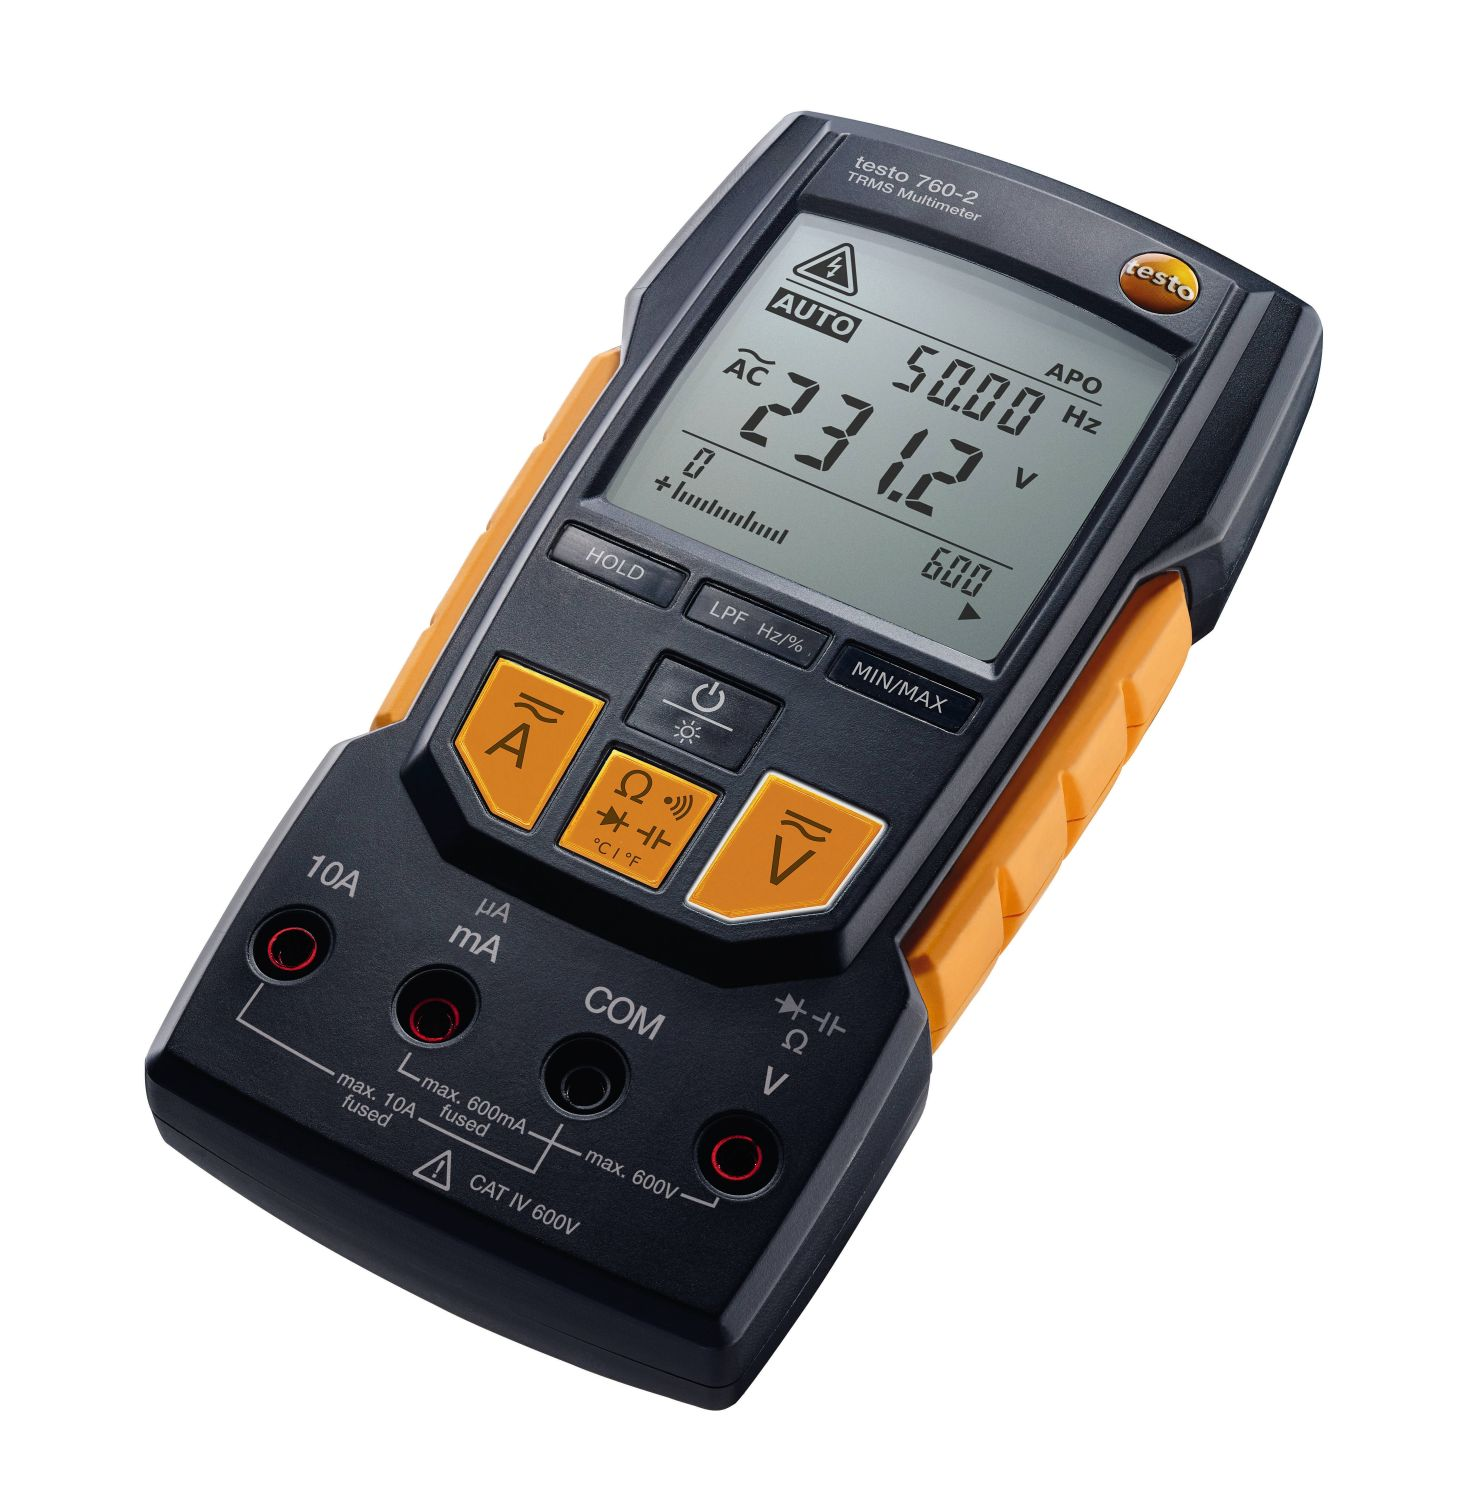 testo-760-2-230V-instrument-others-005879.jpg